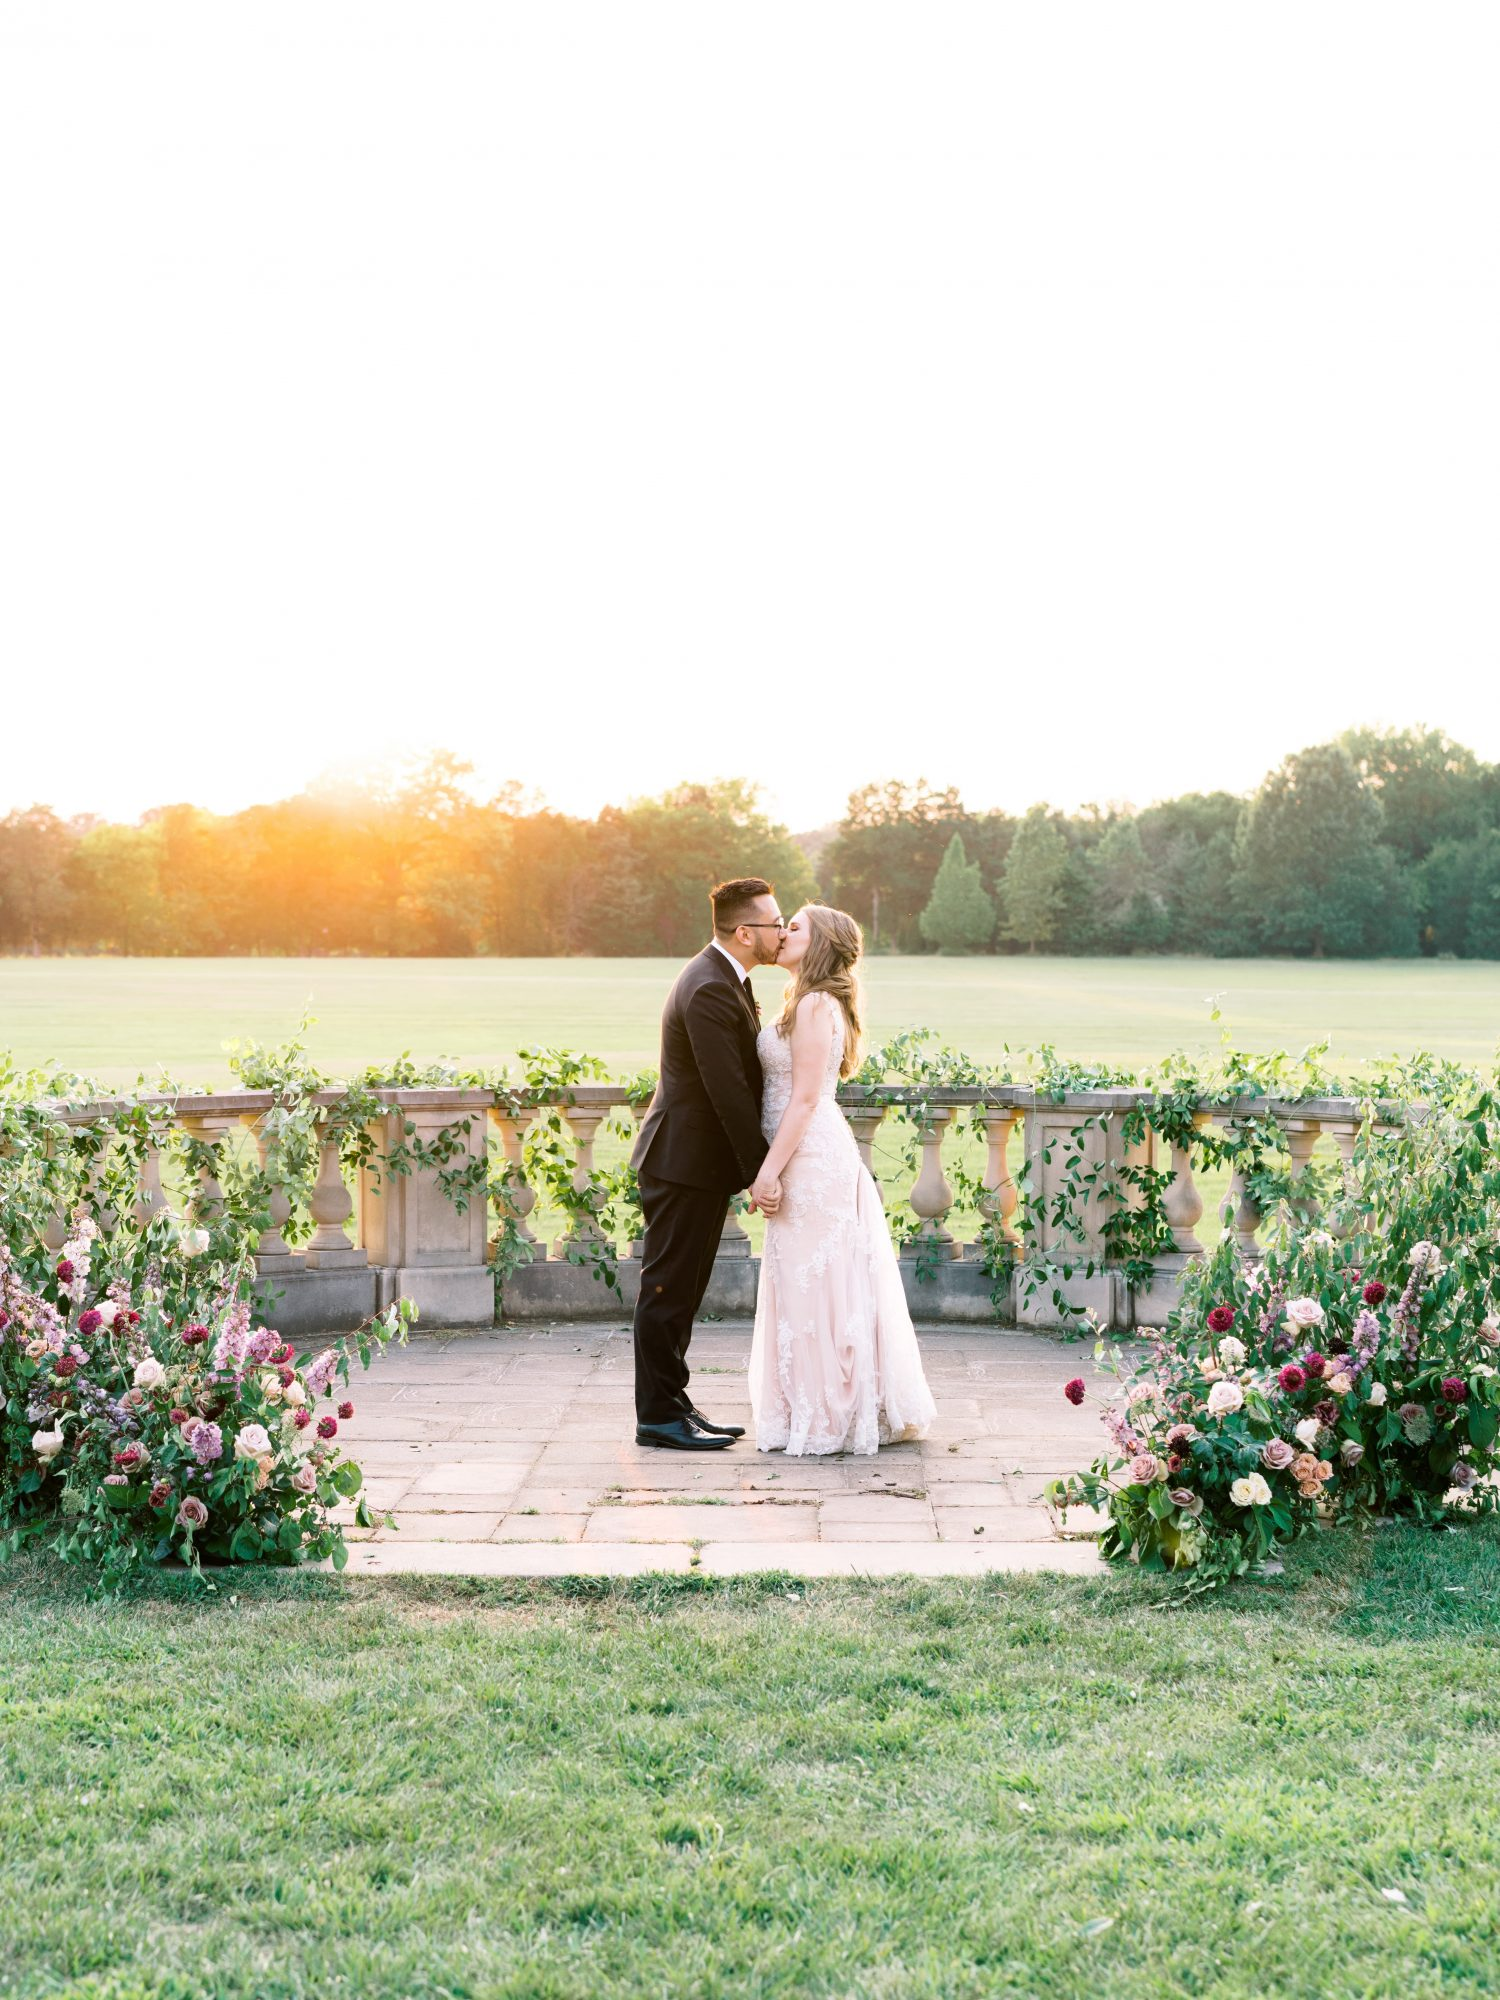 katelyn jose wedding couple kissing with sunset backdrop